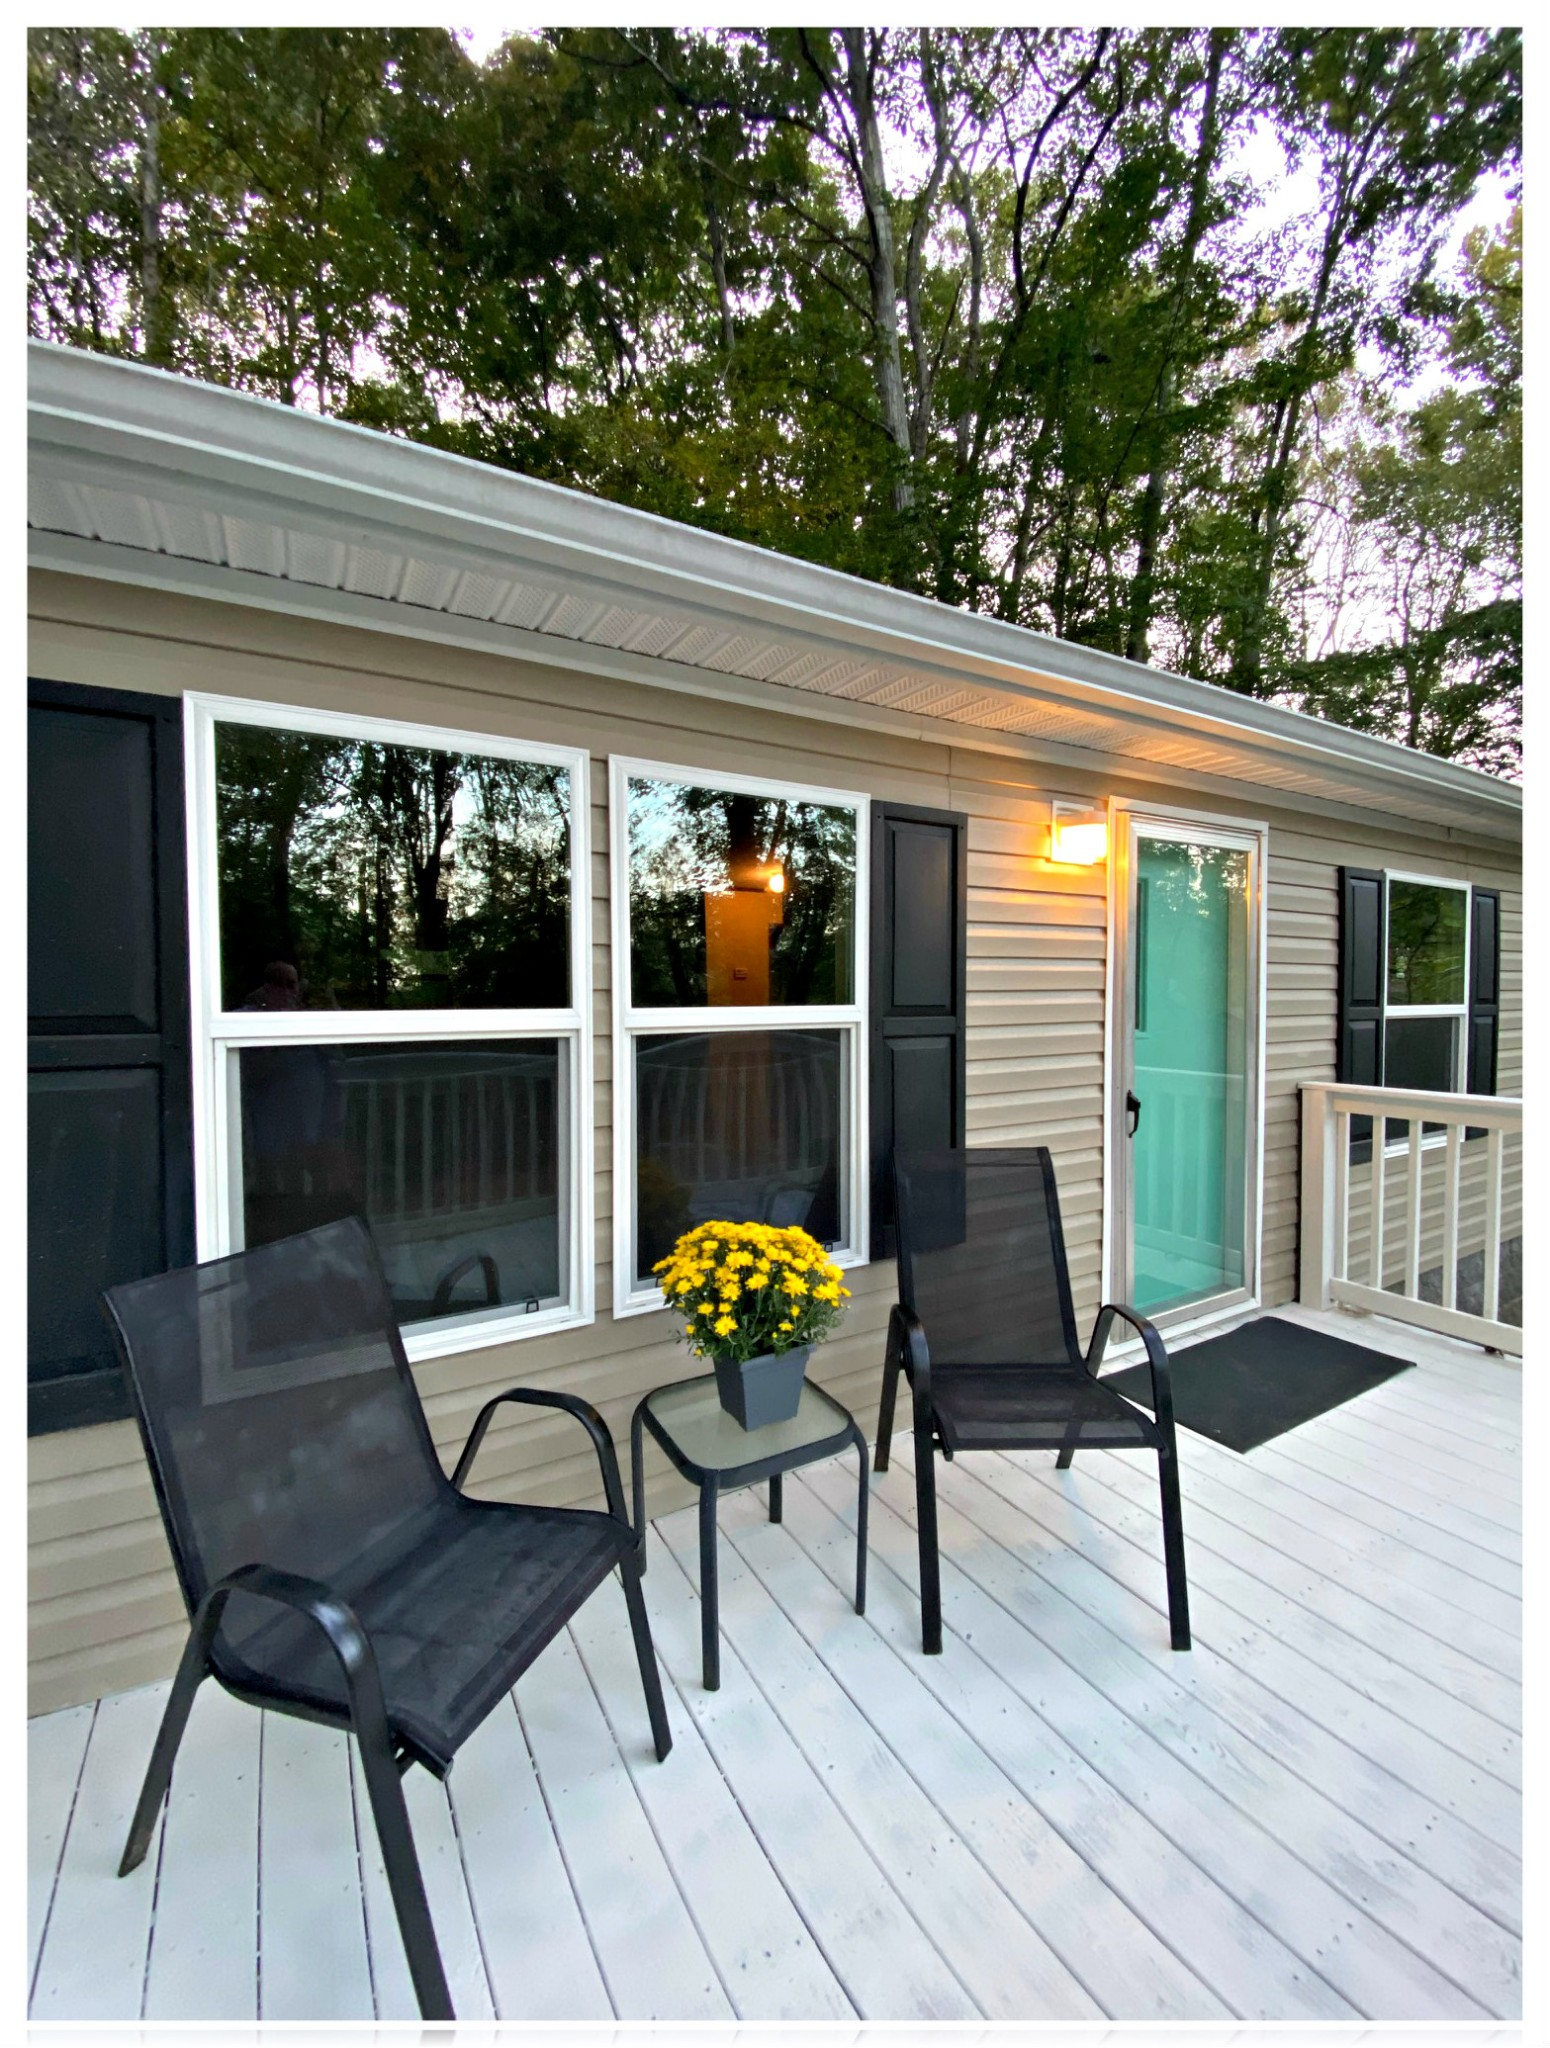 MANUFACTURED HOME ON PERMANENT FOUNDATION * BEAUTIFUL LOT WITH CREEK & PRIVACY GALORE! * 3 BR/2 FULL BATH * OPEN FLOOR PLAN * CUSTOM BUILT ISLAND IN KITCHEN * SOAKING TUB IN MASTER * WALK-IN CLOSETS * GREAT FRONT DECK OVERLOOKING NATURE